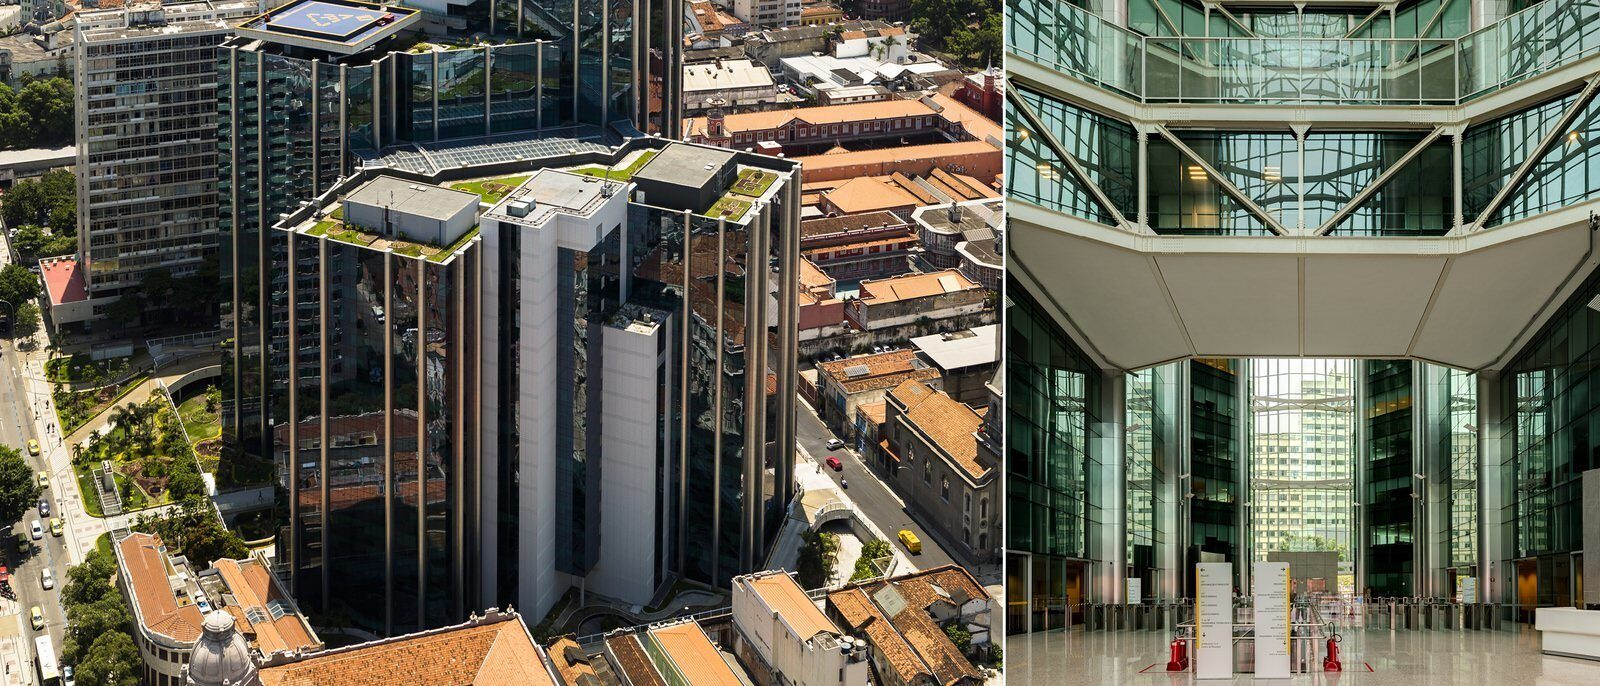 Two images. The first is a large building with tinted glass windows. The second is inside the atrium.